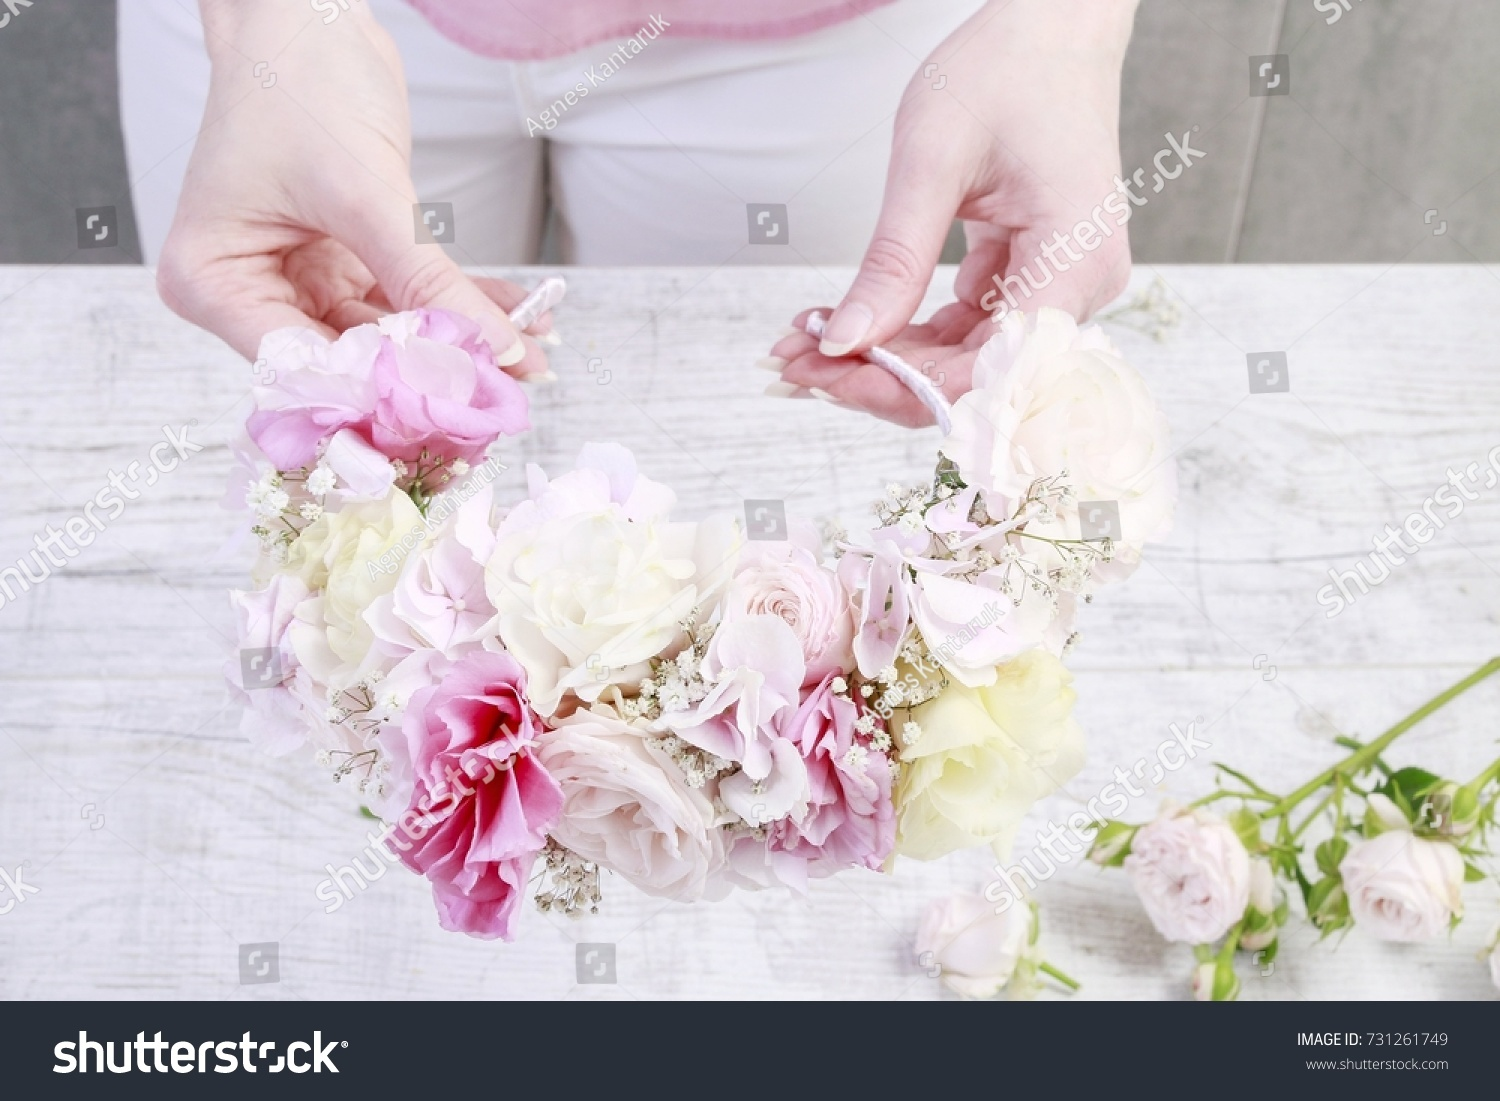 Florist Work How Make Flower Crown Stock Photo Edit Now 731261749